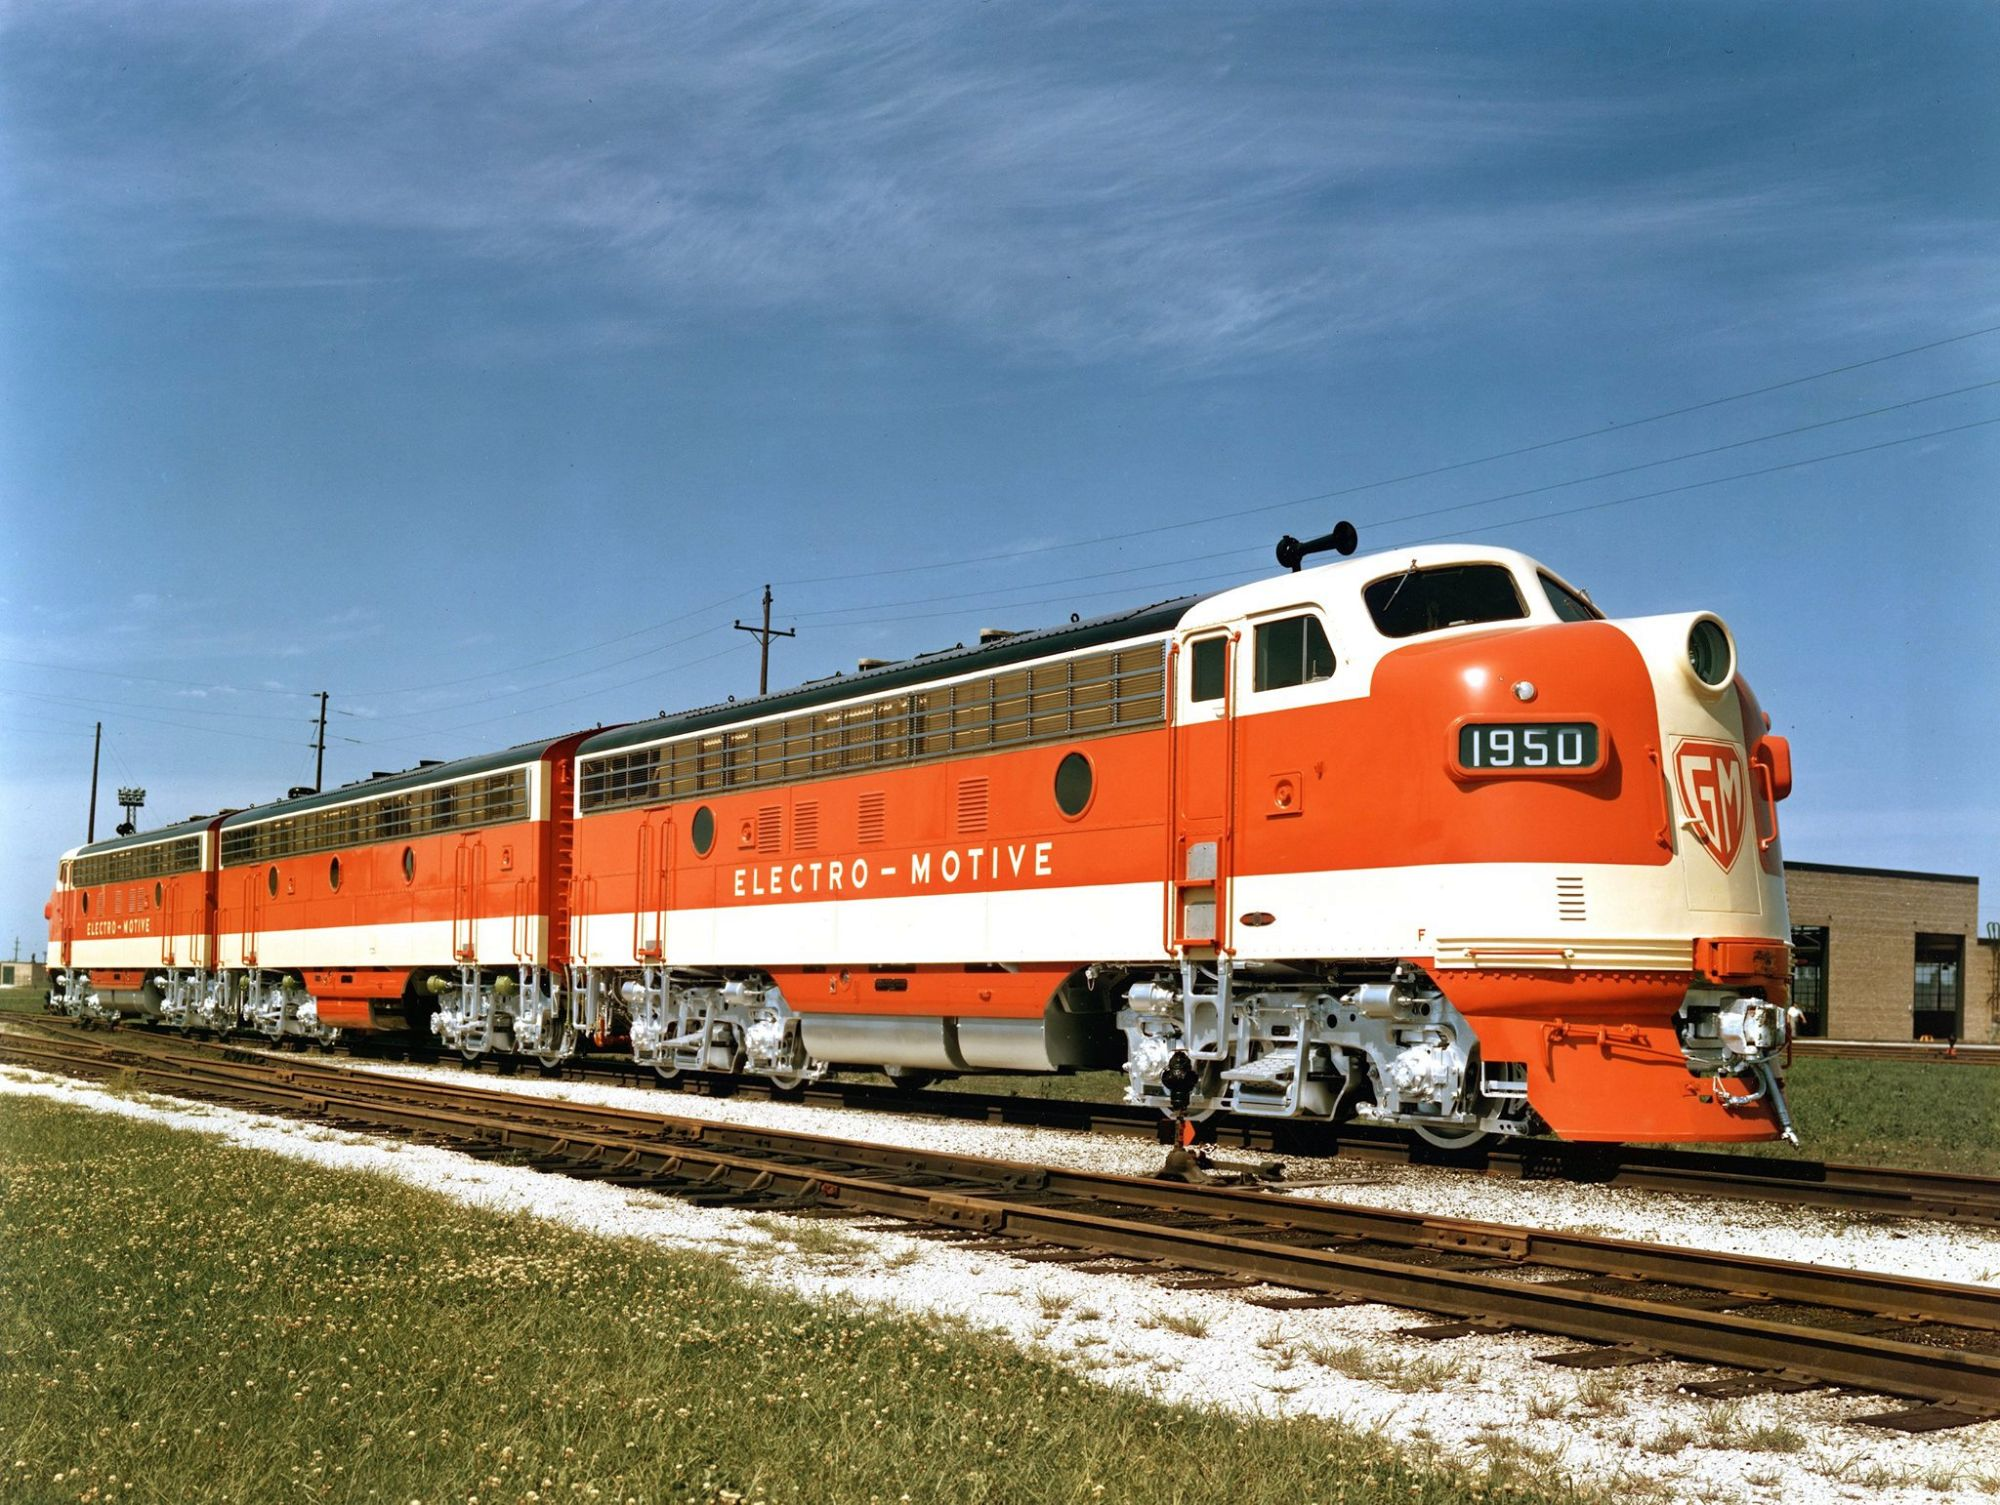 Image showing EMD F7 locomotive